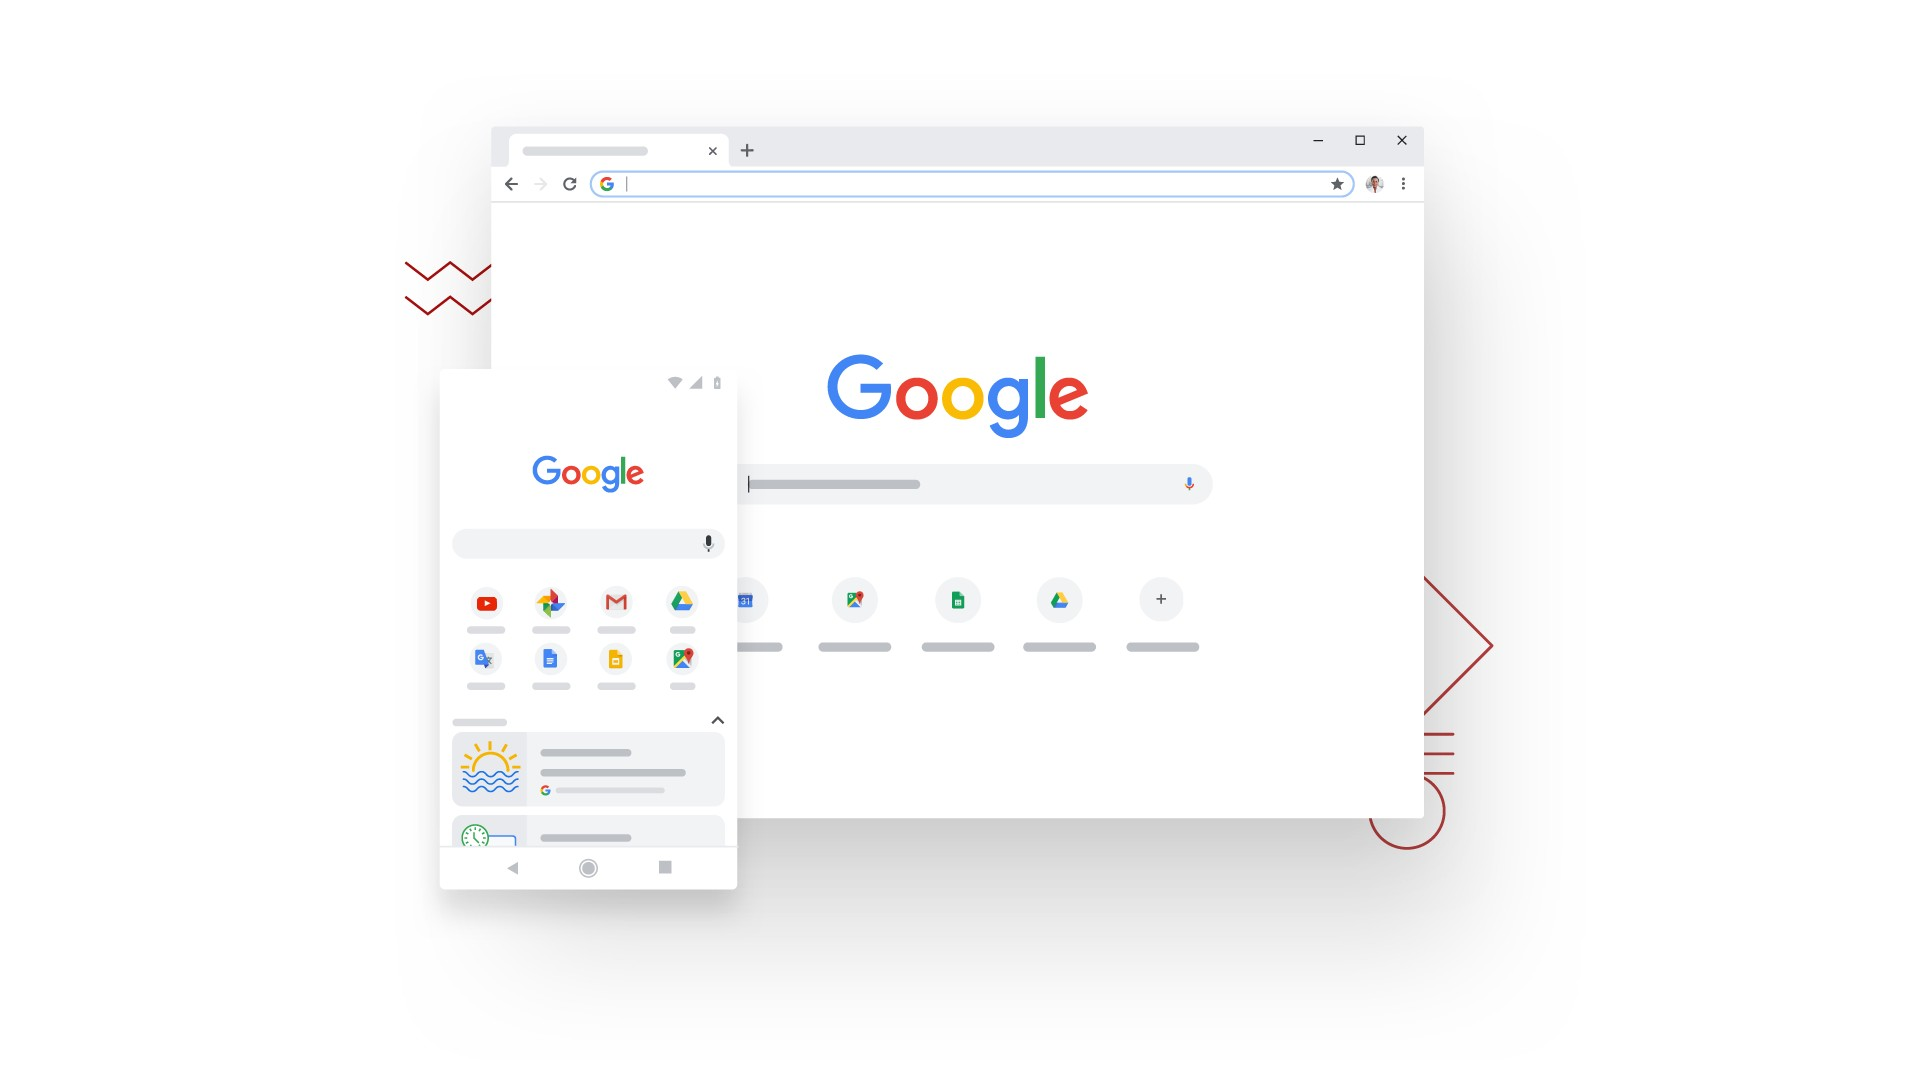 Chrome for desktop is less RAM hungry with latest update thanks to PartitionAlloc